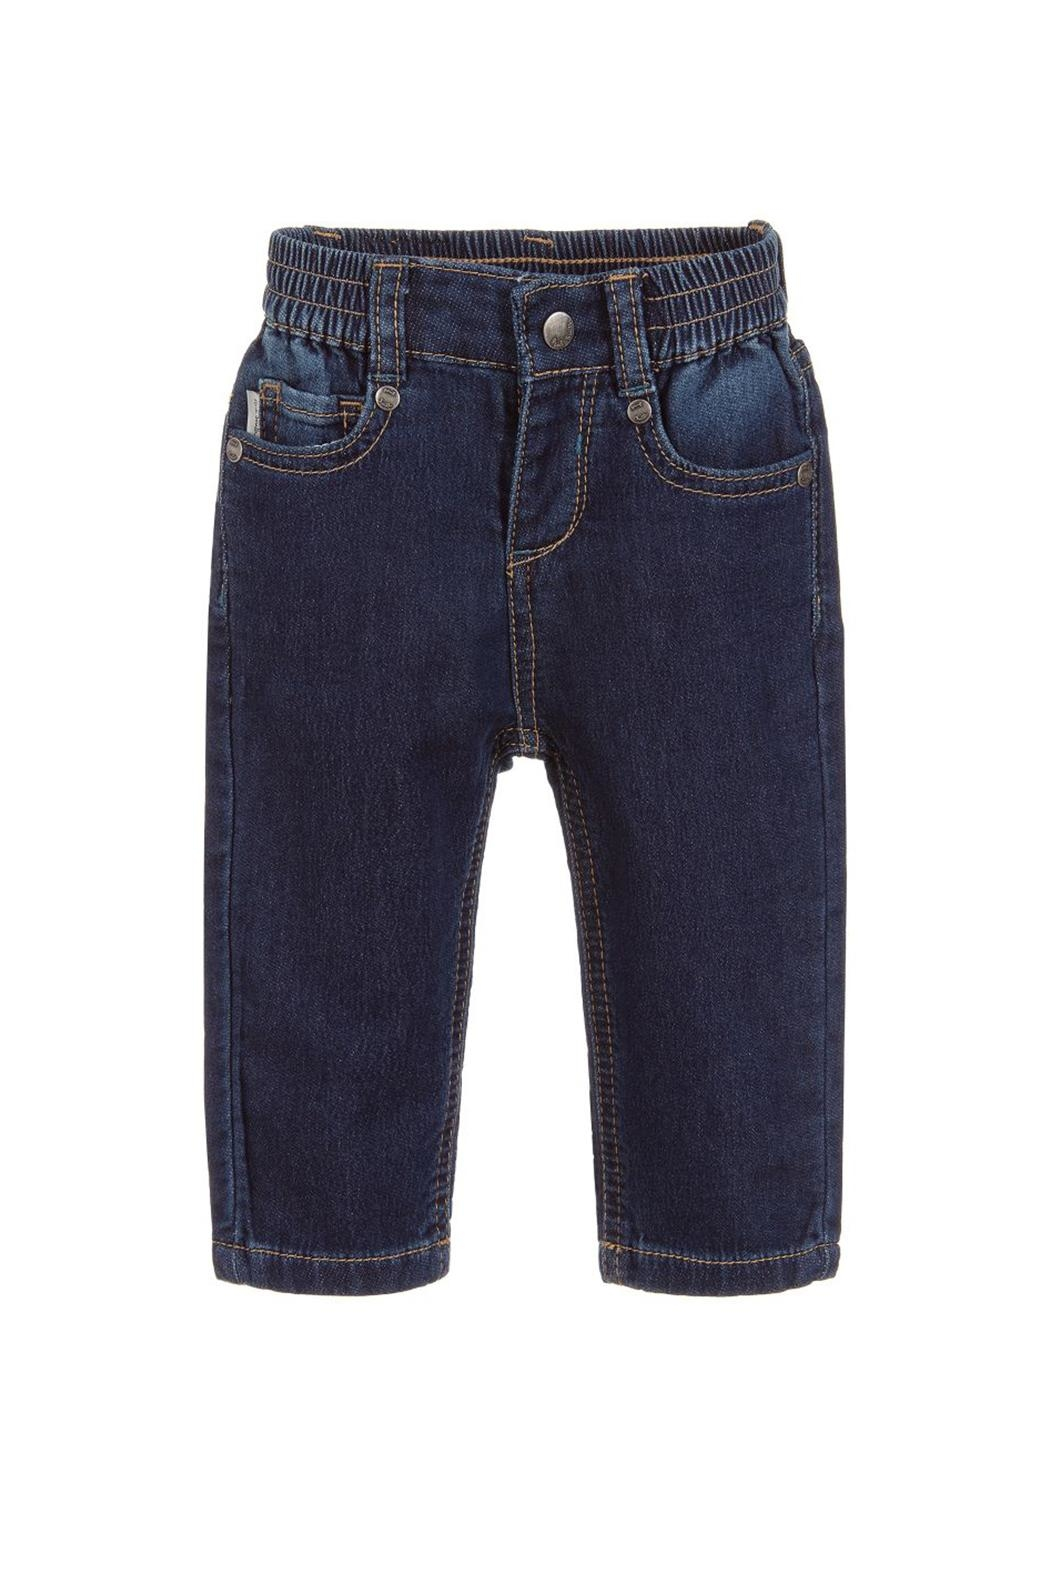 Paul Smith Junior Blue-Denim 'Tiziano' Trousers - Front Cropped Image